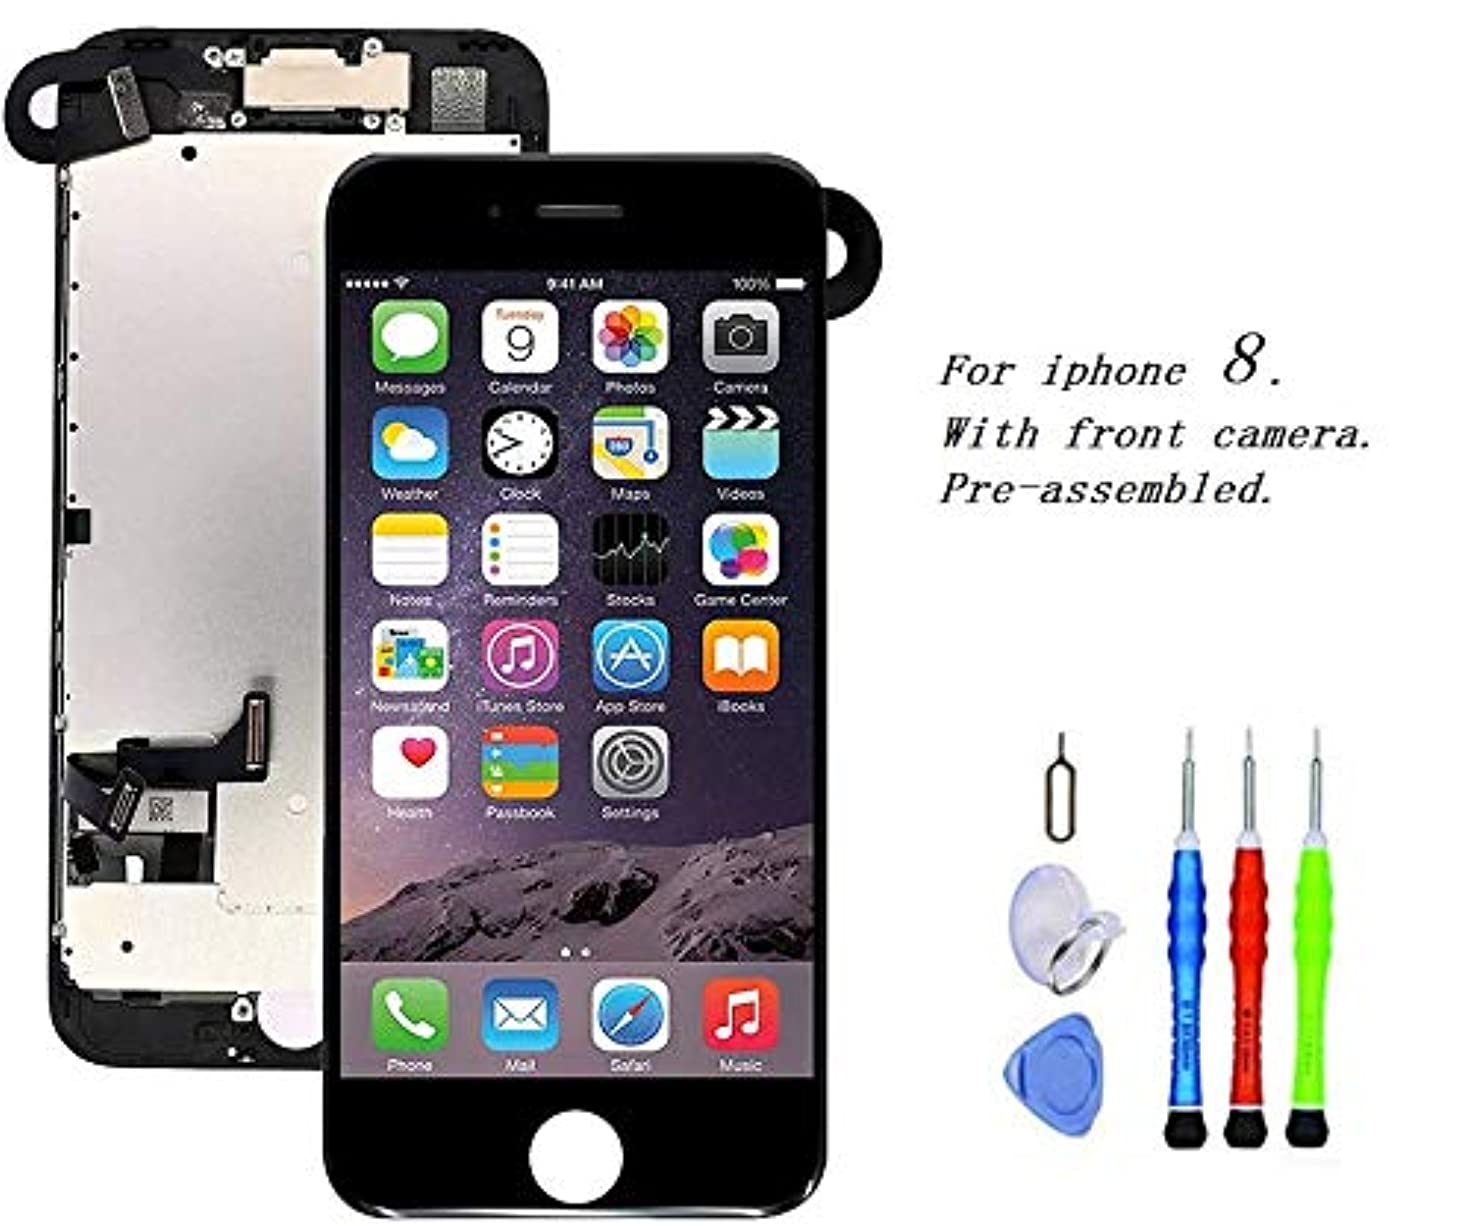 Premium Screen Replacement Compatible with iPhone 8 4.7 inch Full Assembly - LCD 3D Touch Display digitizer with Front Camera, Ear Speaker and Sensors, Compatible with All iPhone 8 4.7(Black)